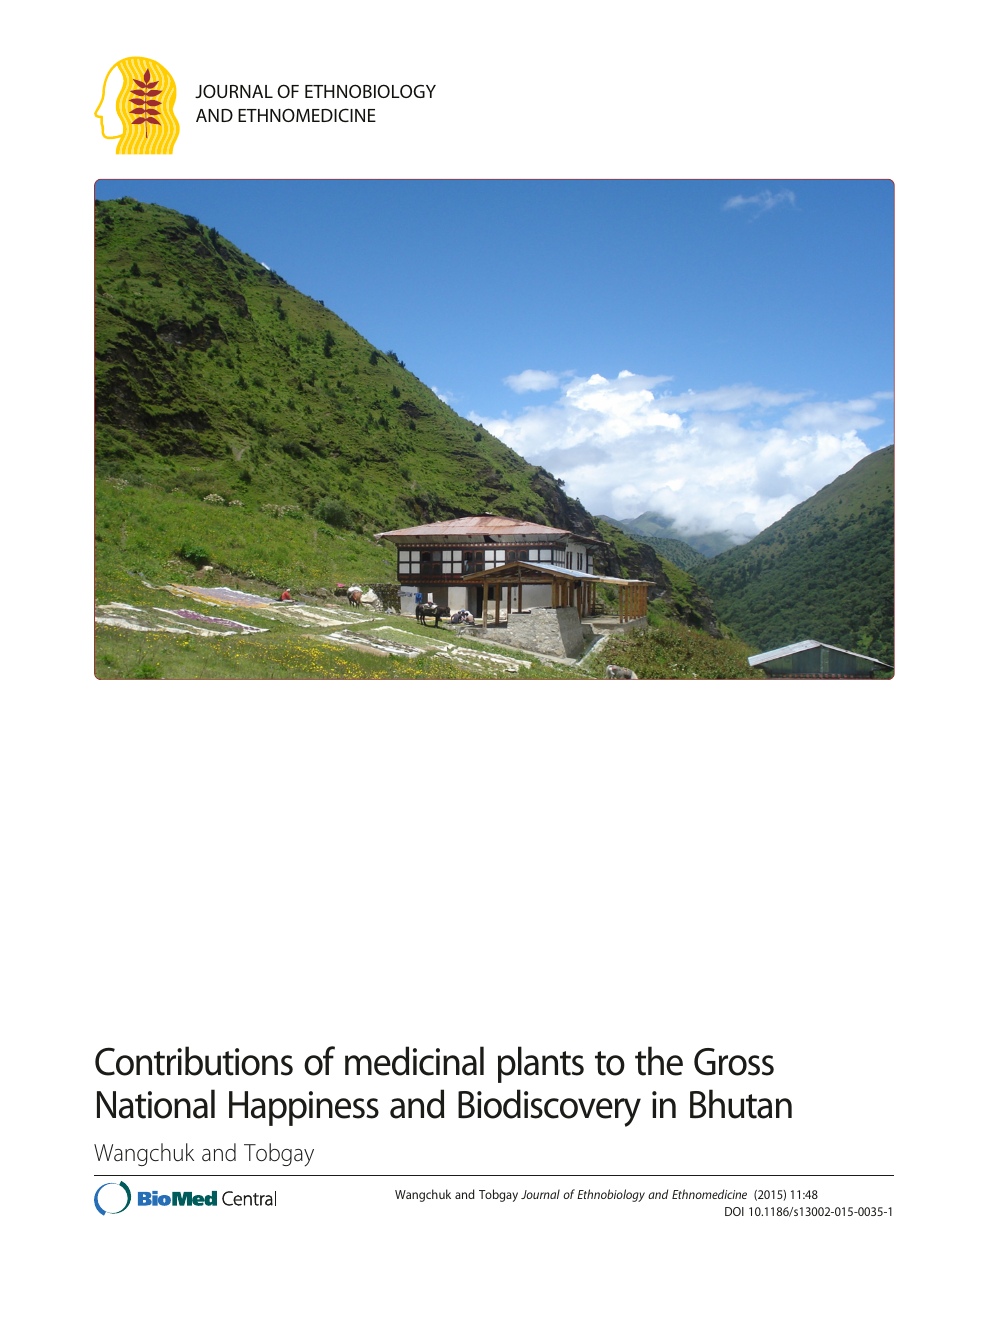 Contributions of medicinal plants to the Gross National Happiness